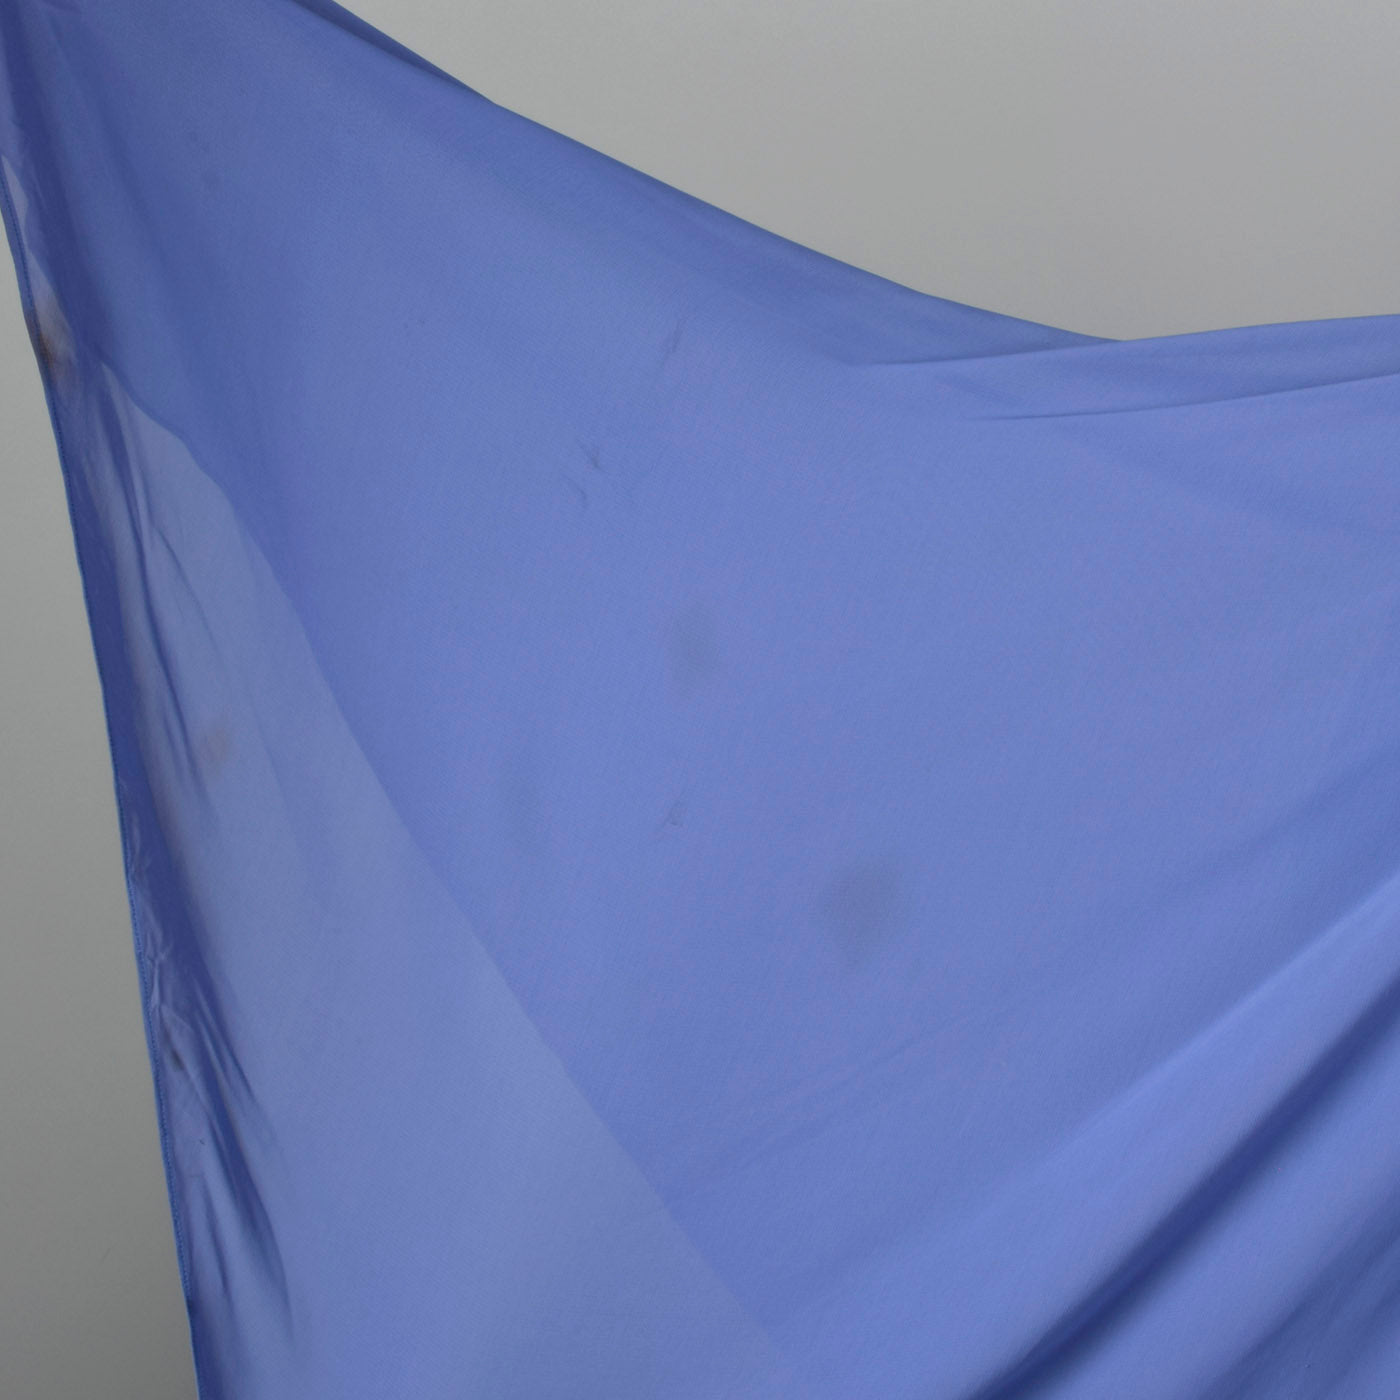 1950s Periwinkle Blue Chiffon Party Dress